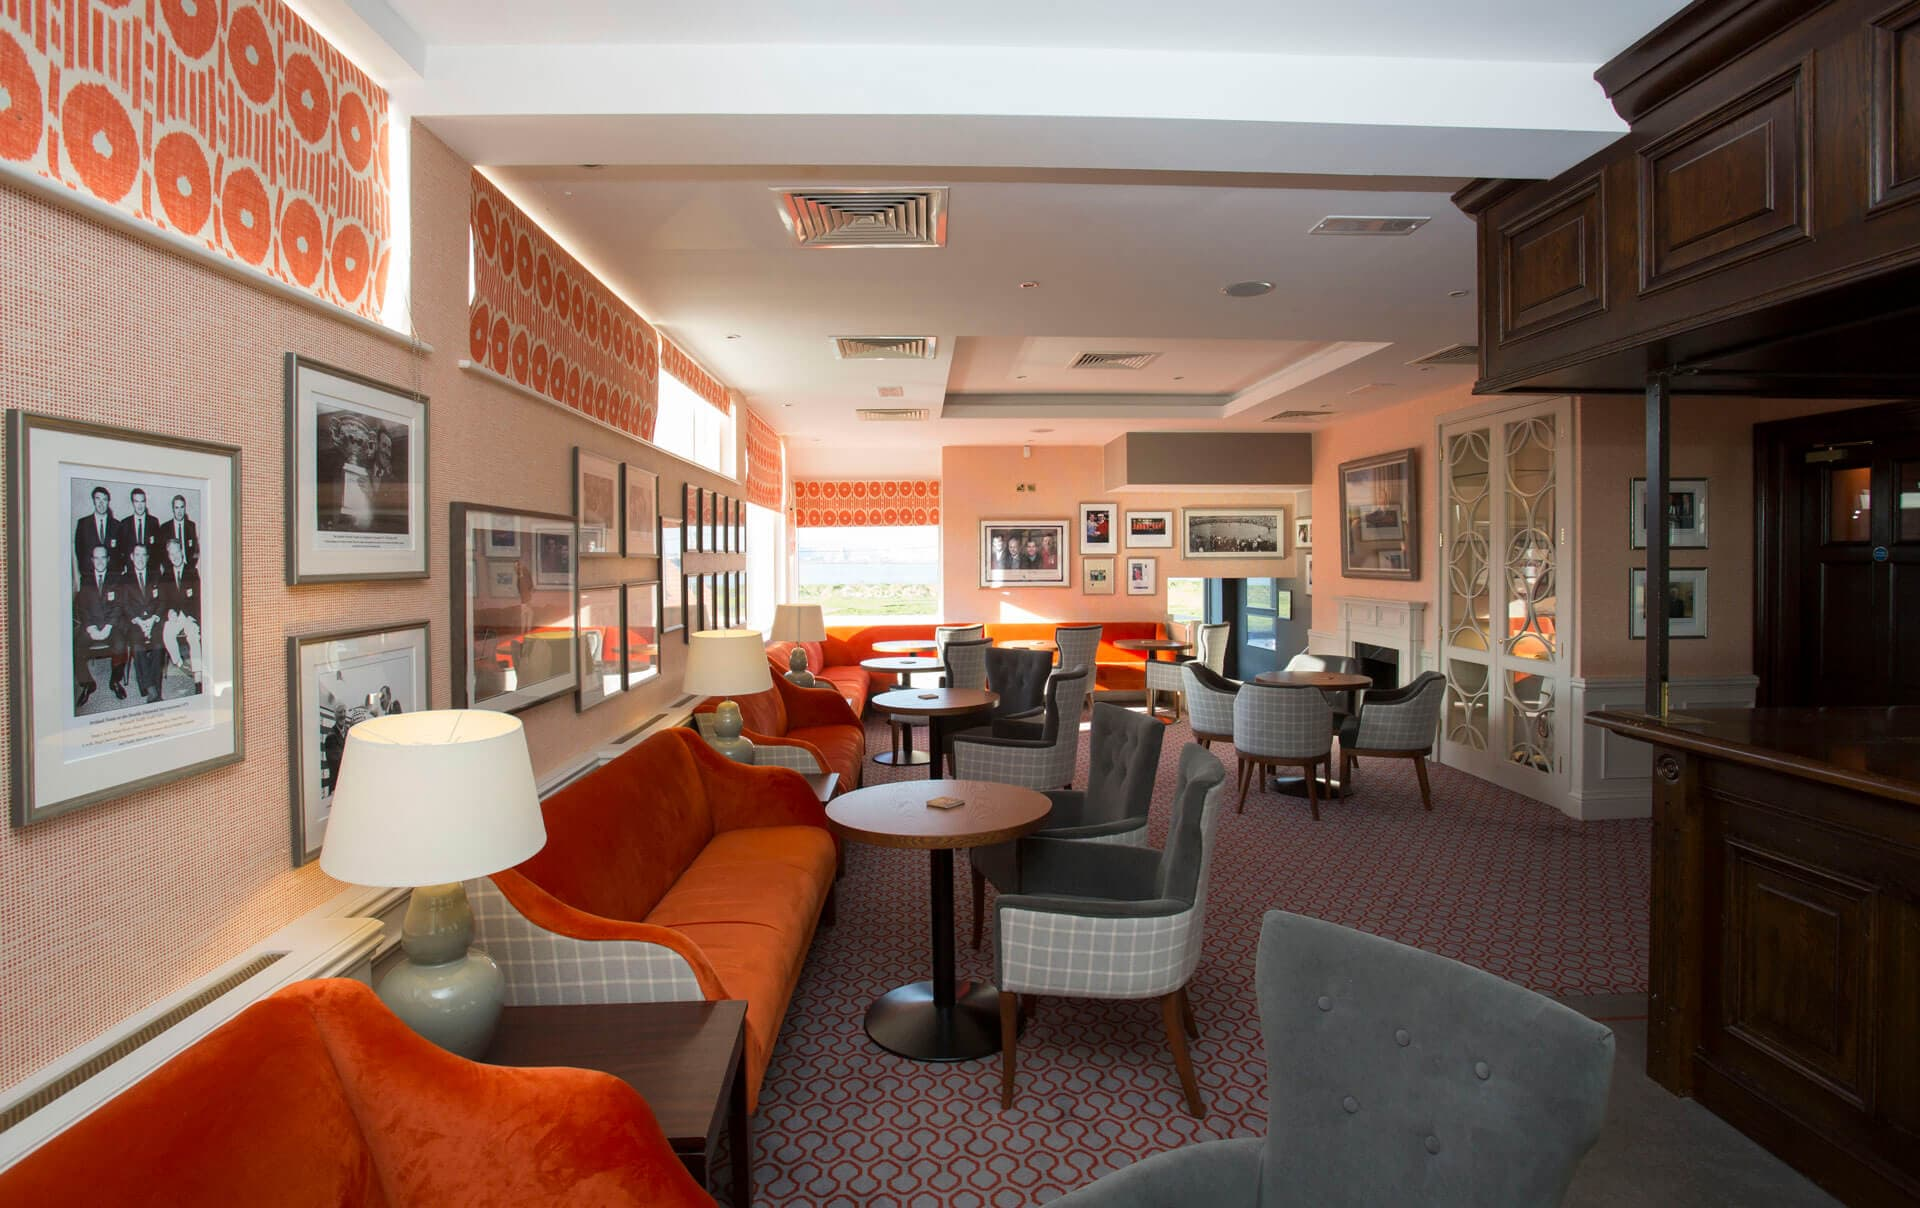 The Christy O'Connor Room